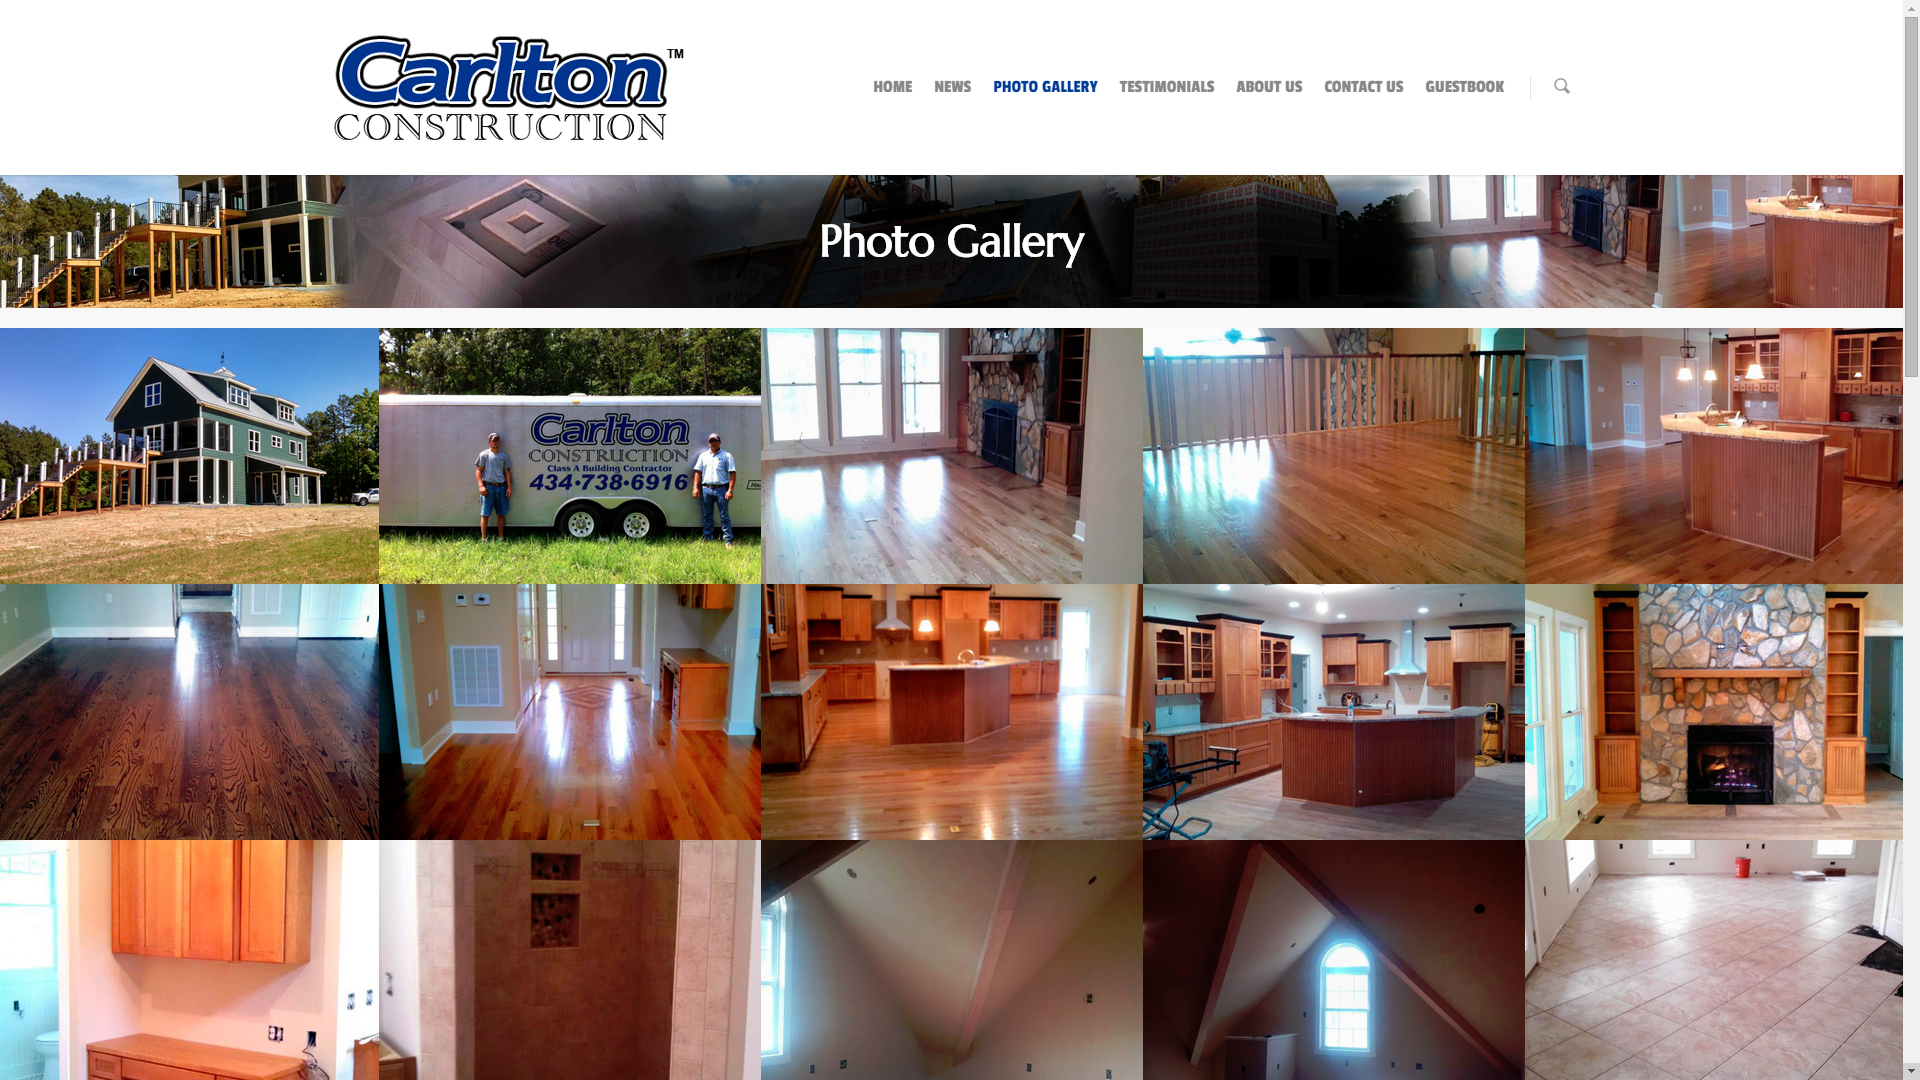 The photos page includes fully responsive images in a gallery with images that can be enlarged in a lightbox window.